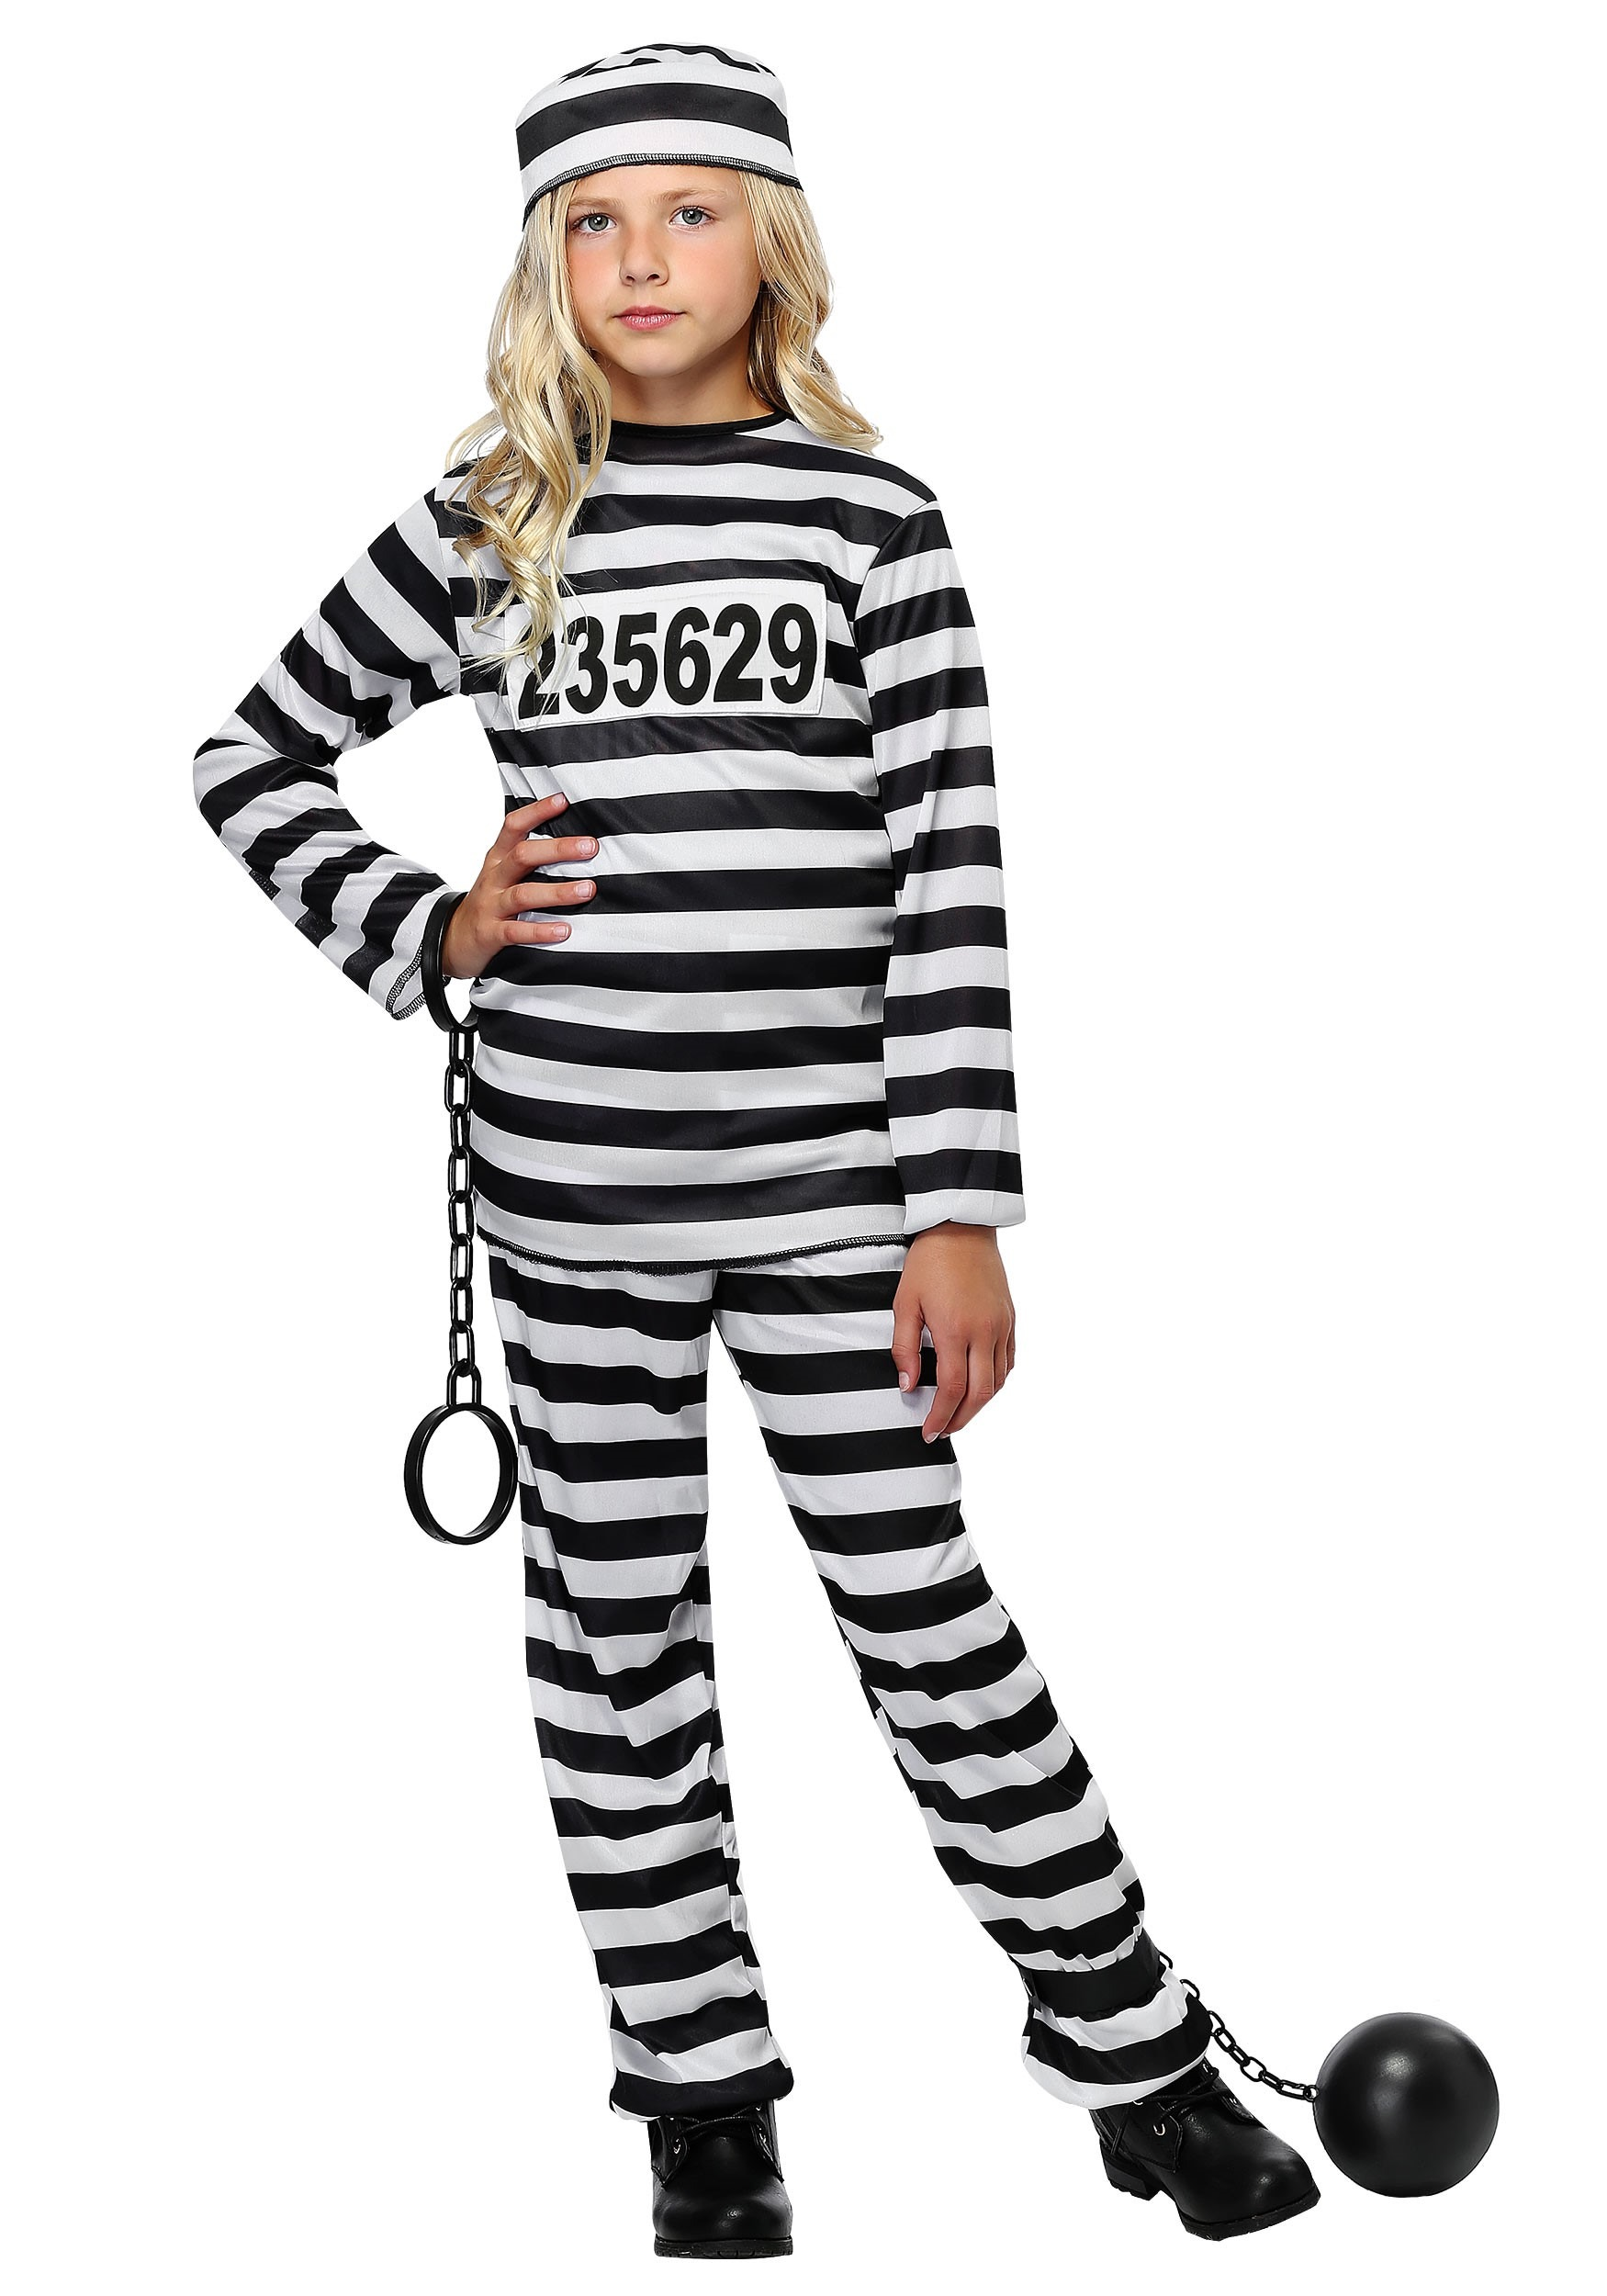 Prisoner costumes sexy prisoner halloween costumes girls prisoner costume solutioingenieria Image collections